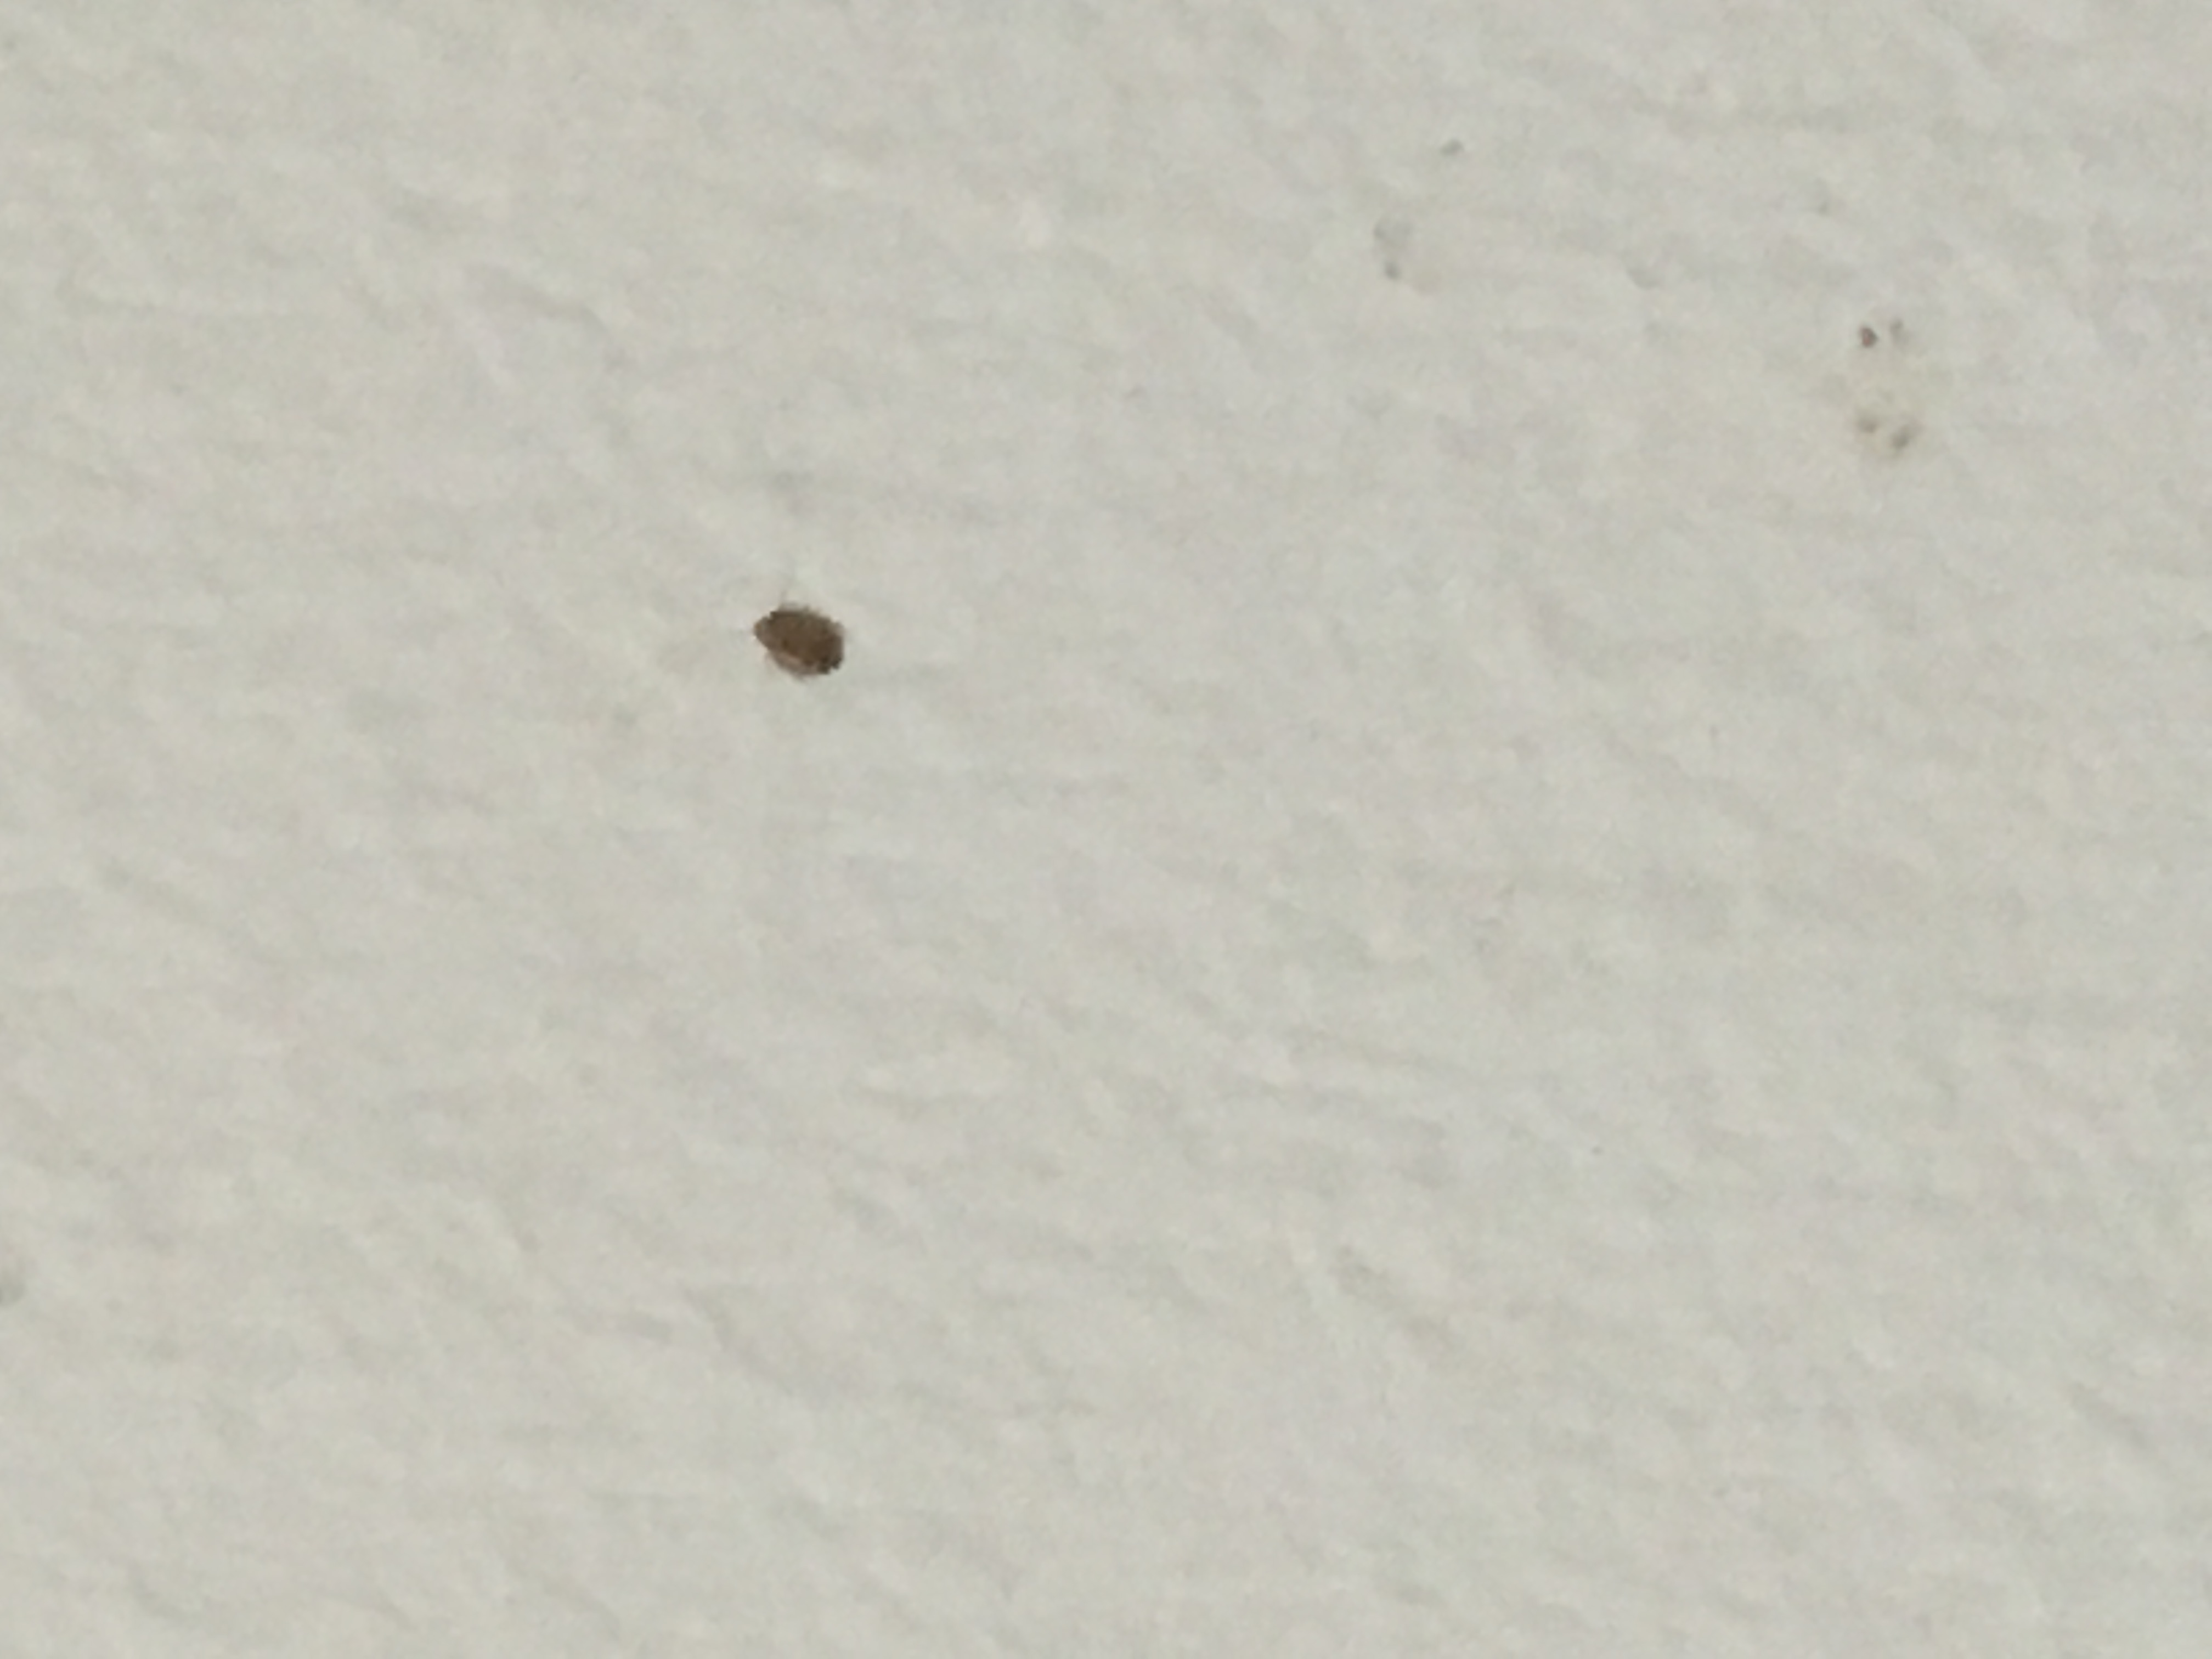 Tiny Insects Found On Wall Page 1